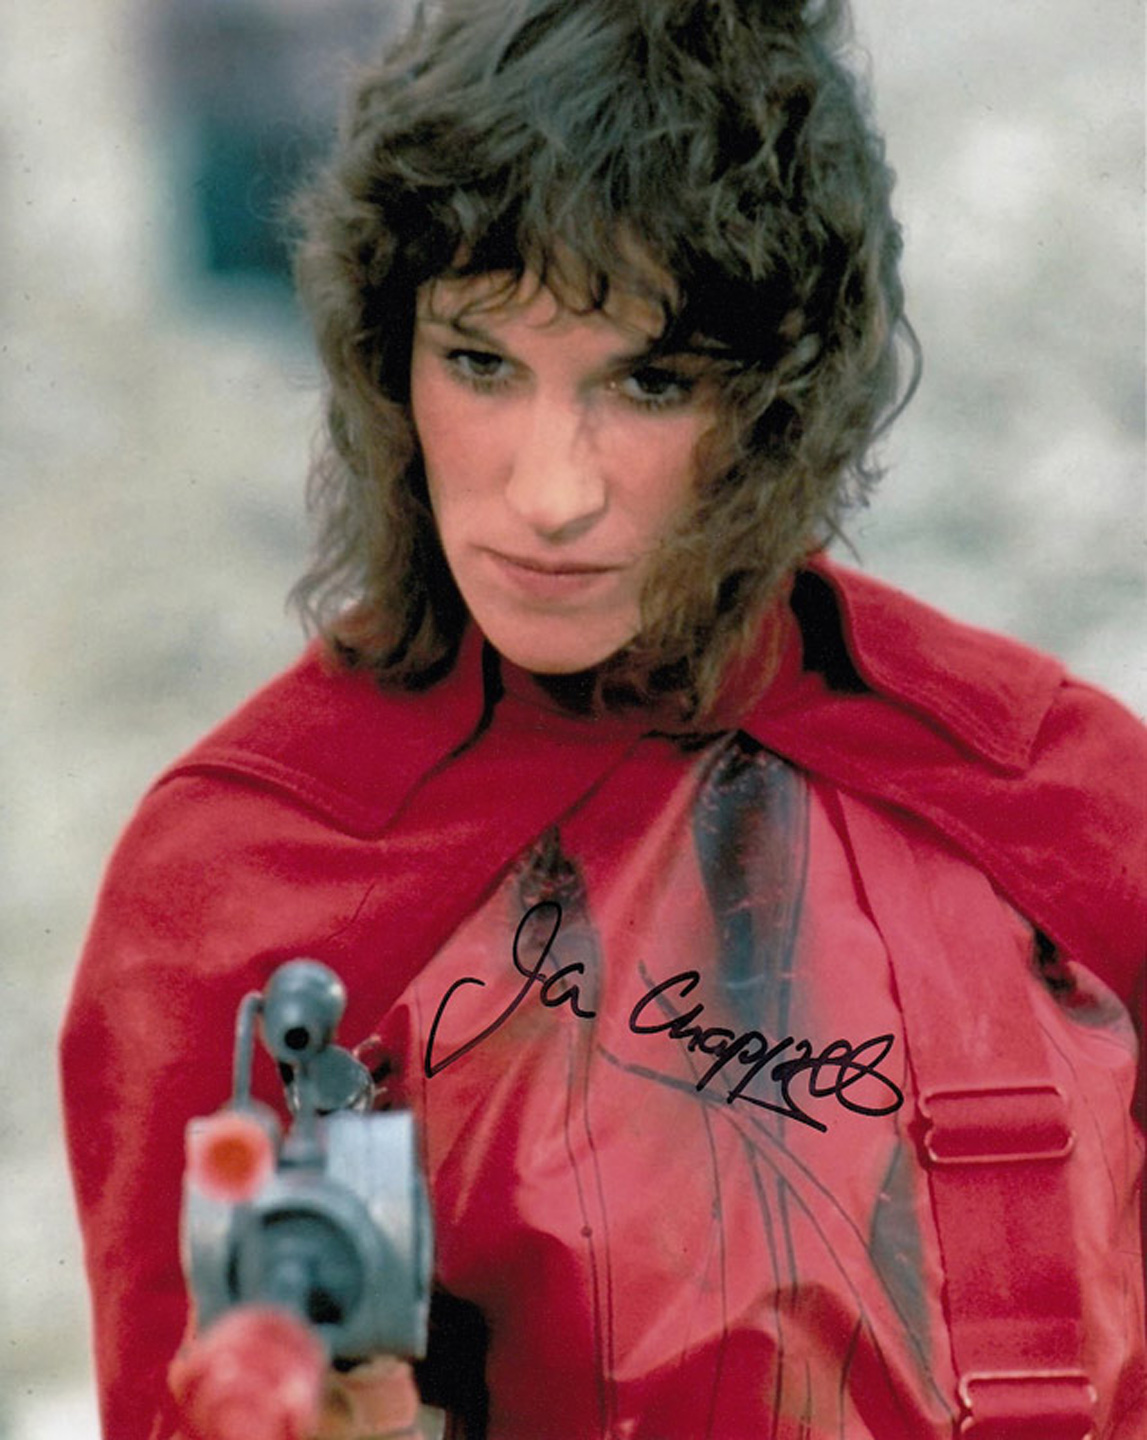 Blowout Sale! Blakes 7 Jan Chappell hand signed 10x8 photo. This beautiful 10x8 hand signed photo